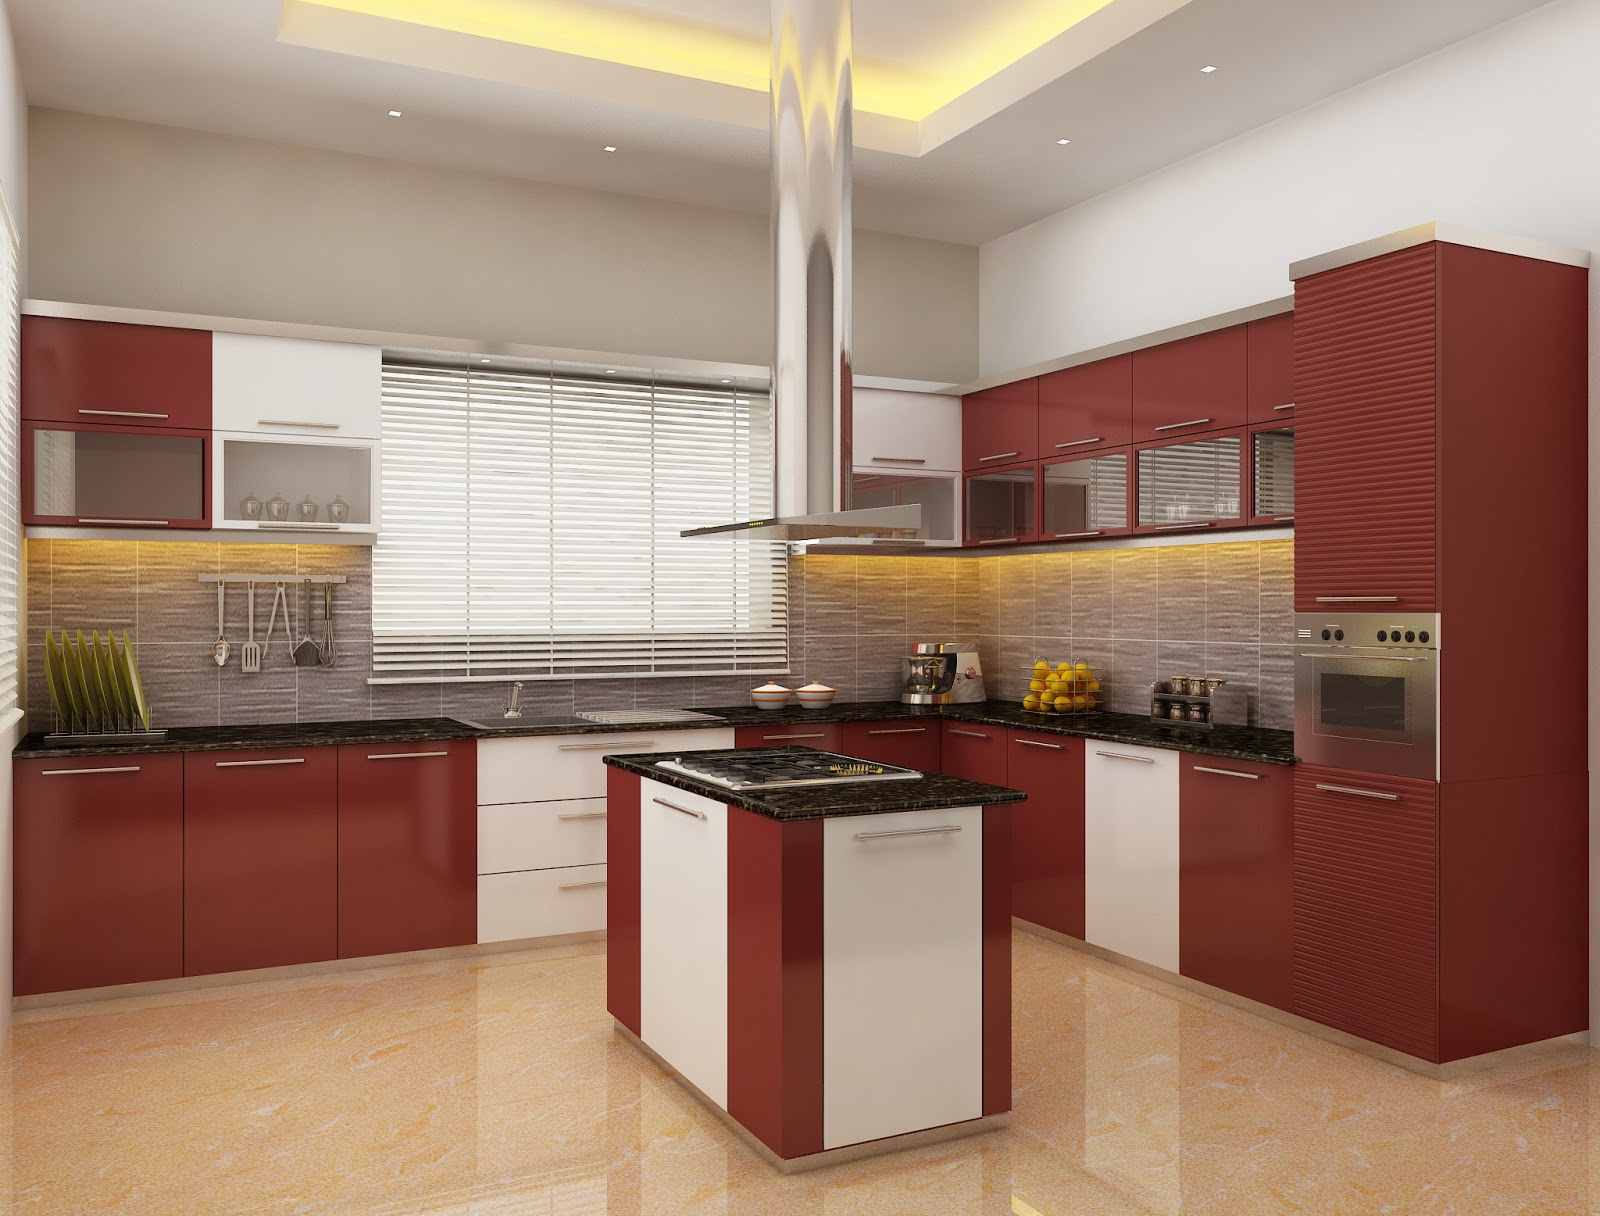 Modern kitchen in kerala style joy studio design gallery for Kerala style kitchen photos